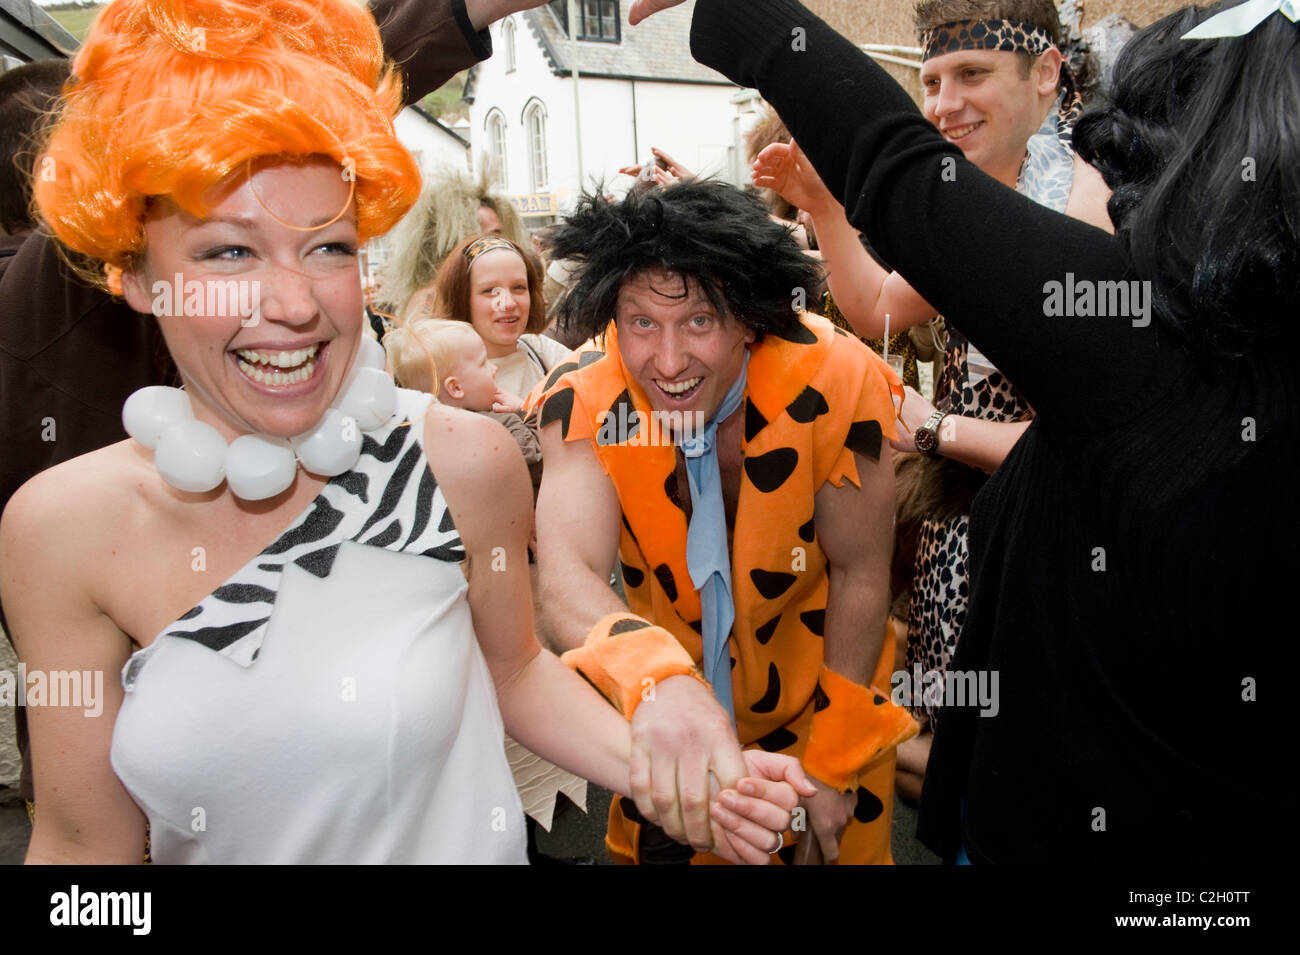 Ed Robinson (34) (Fred)and Gayle Watson (29) (Thelma) at their flintstones themed wedding in Combe Martin, Devon, - Stock Image